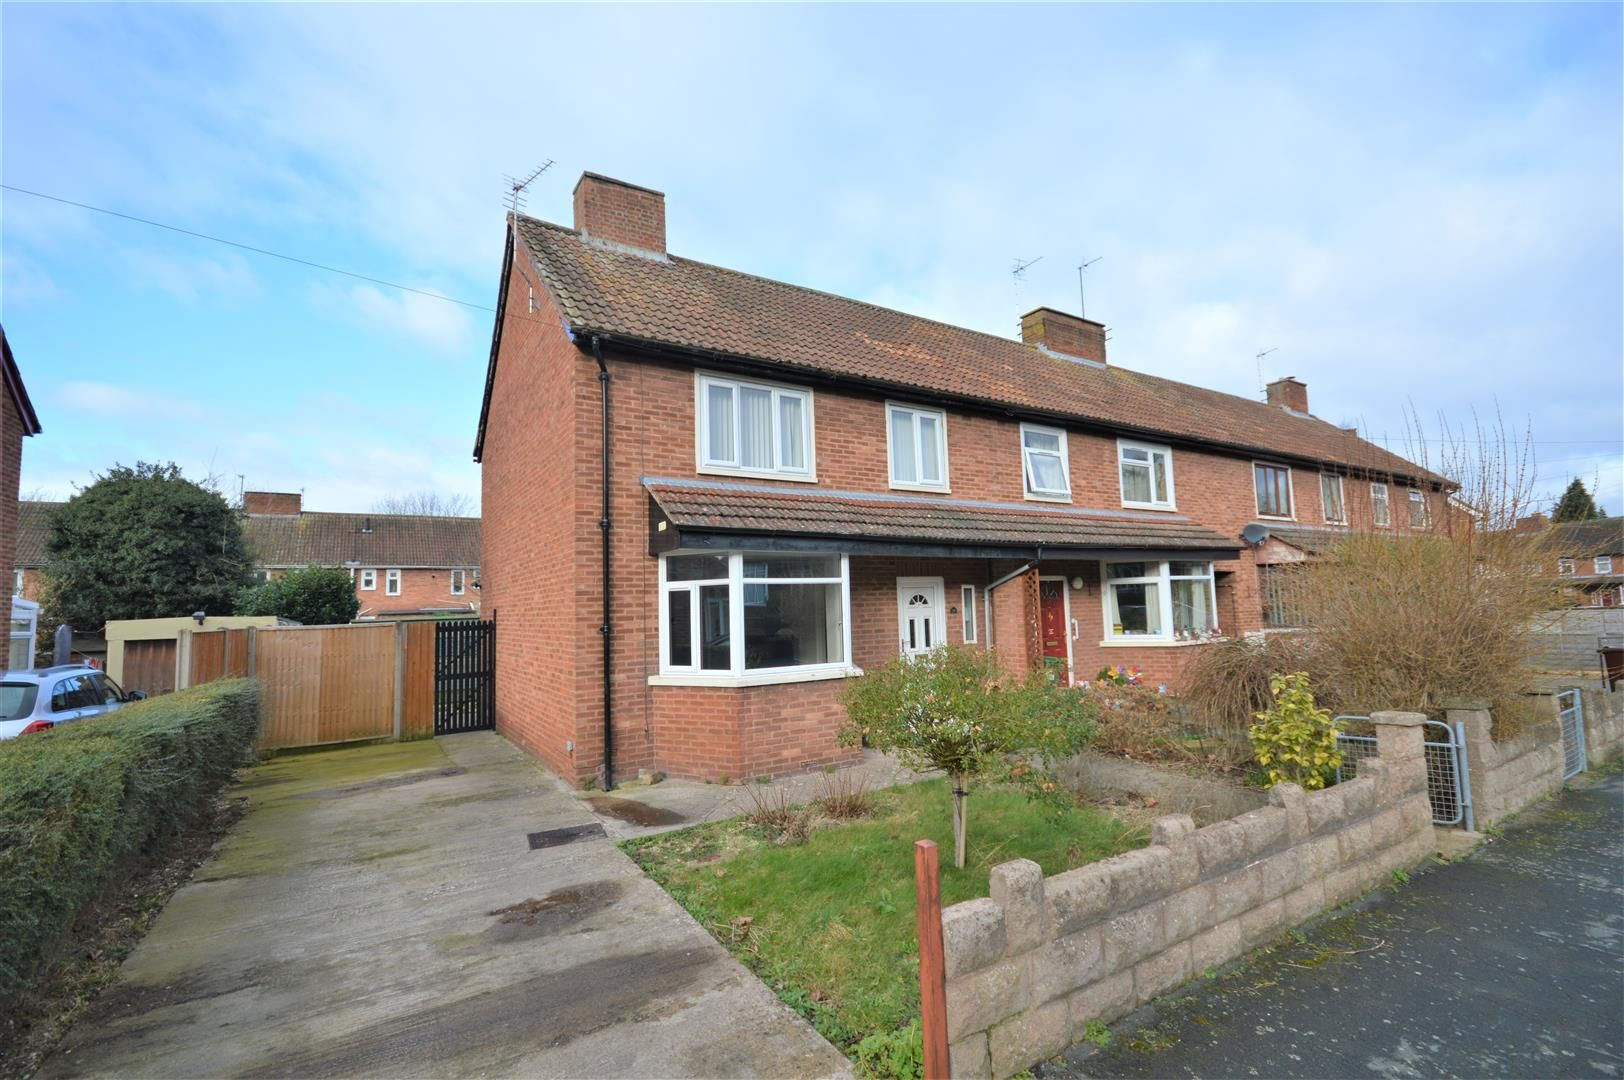 3 bed end-of-terrace for sale in Hereford 15